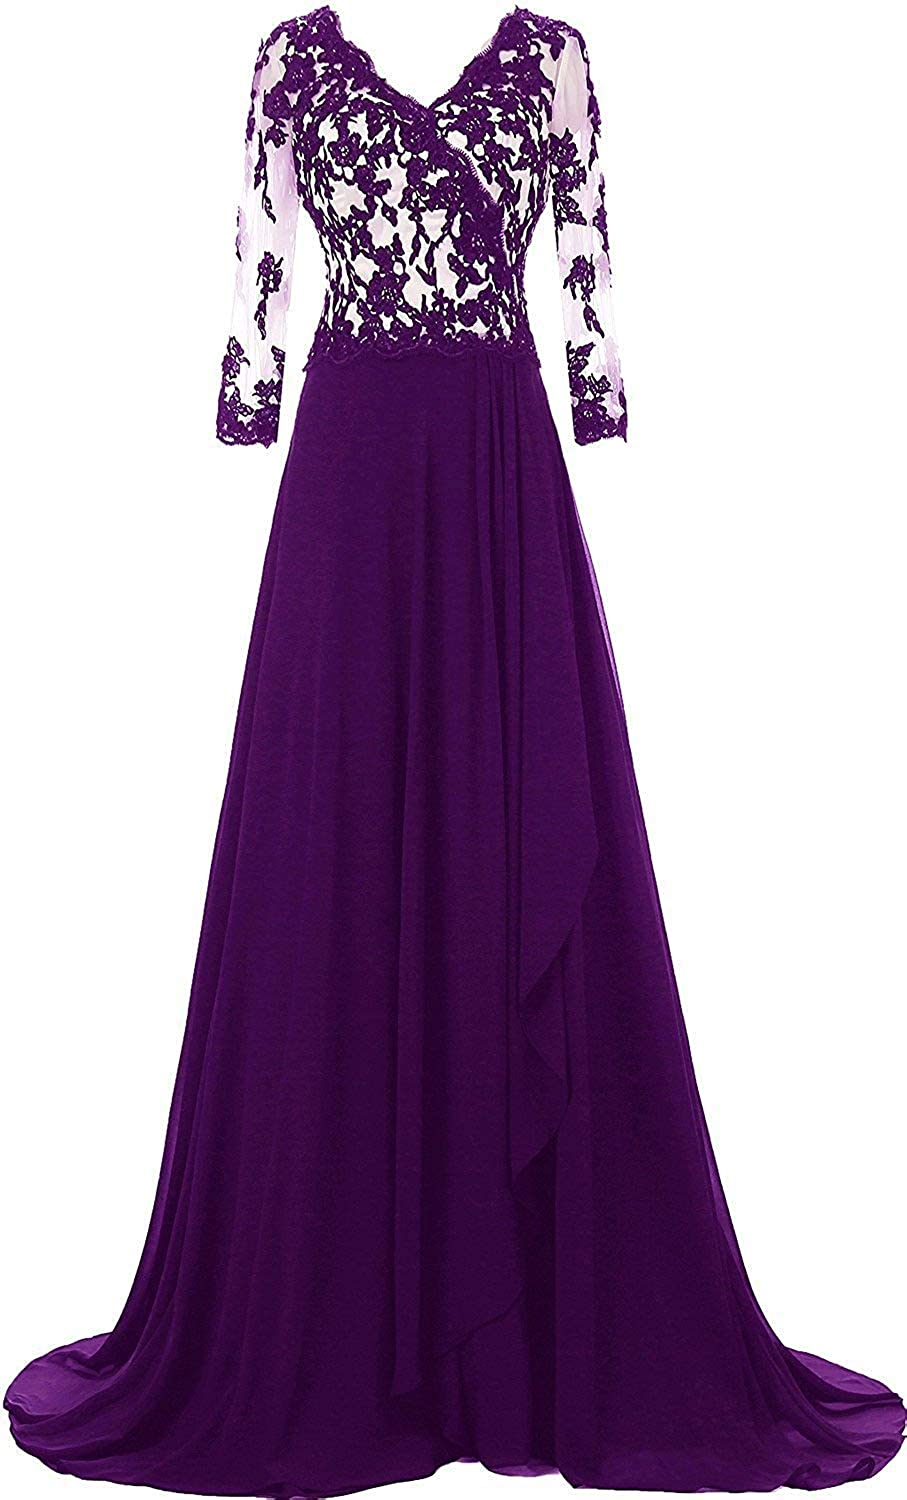 Purple Woman's Applique Mother Of The Bride Dress V Neck With 3 4 Sleeves Formal Evening Dress